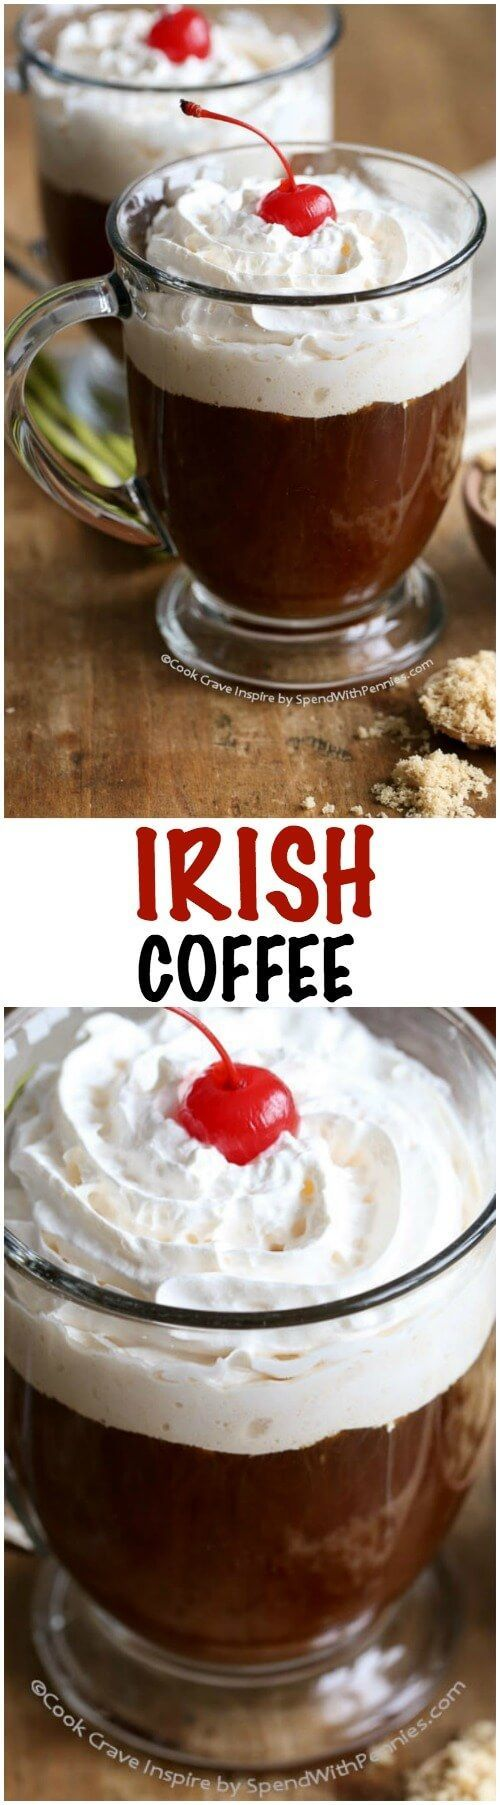 This Irish Coffee recipe is perfect for St. Patrick's Day or anytime! Made with Irish Whisky but you could also substitute Bailey's for a rich creamy version.